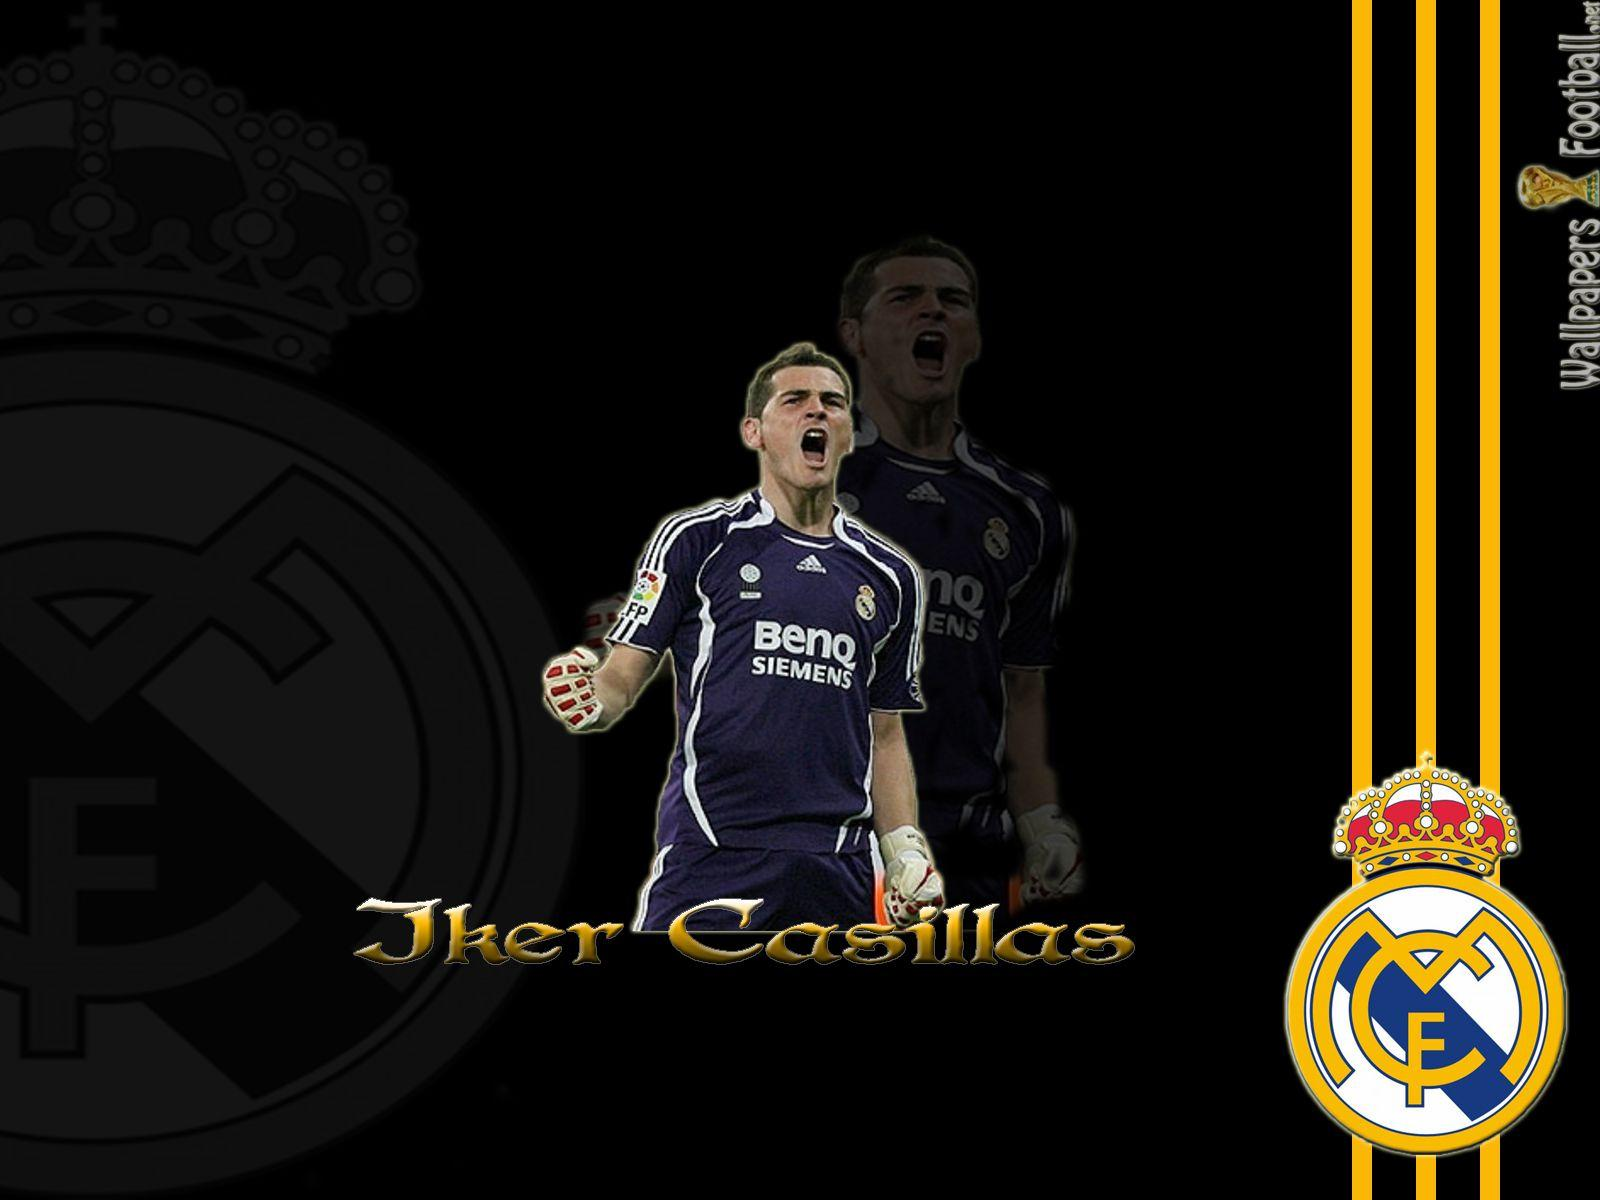 Index of /var/albums/Iker-Casillas-Wallpaper-Gallery